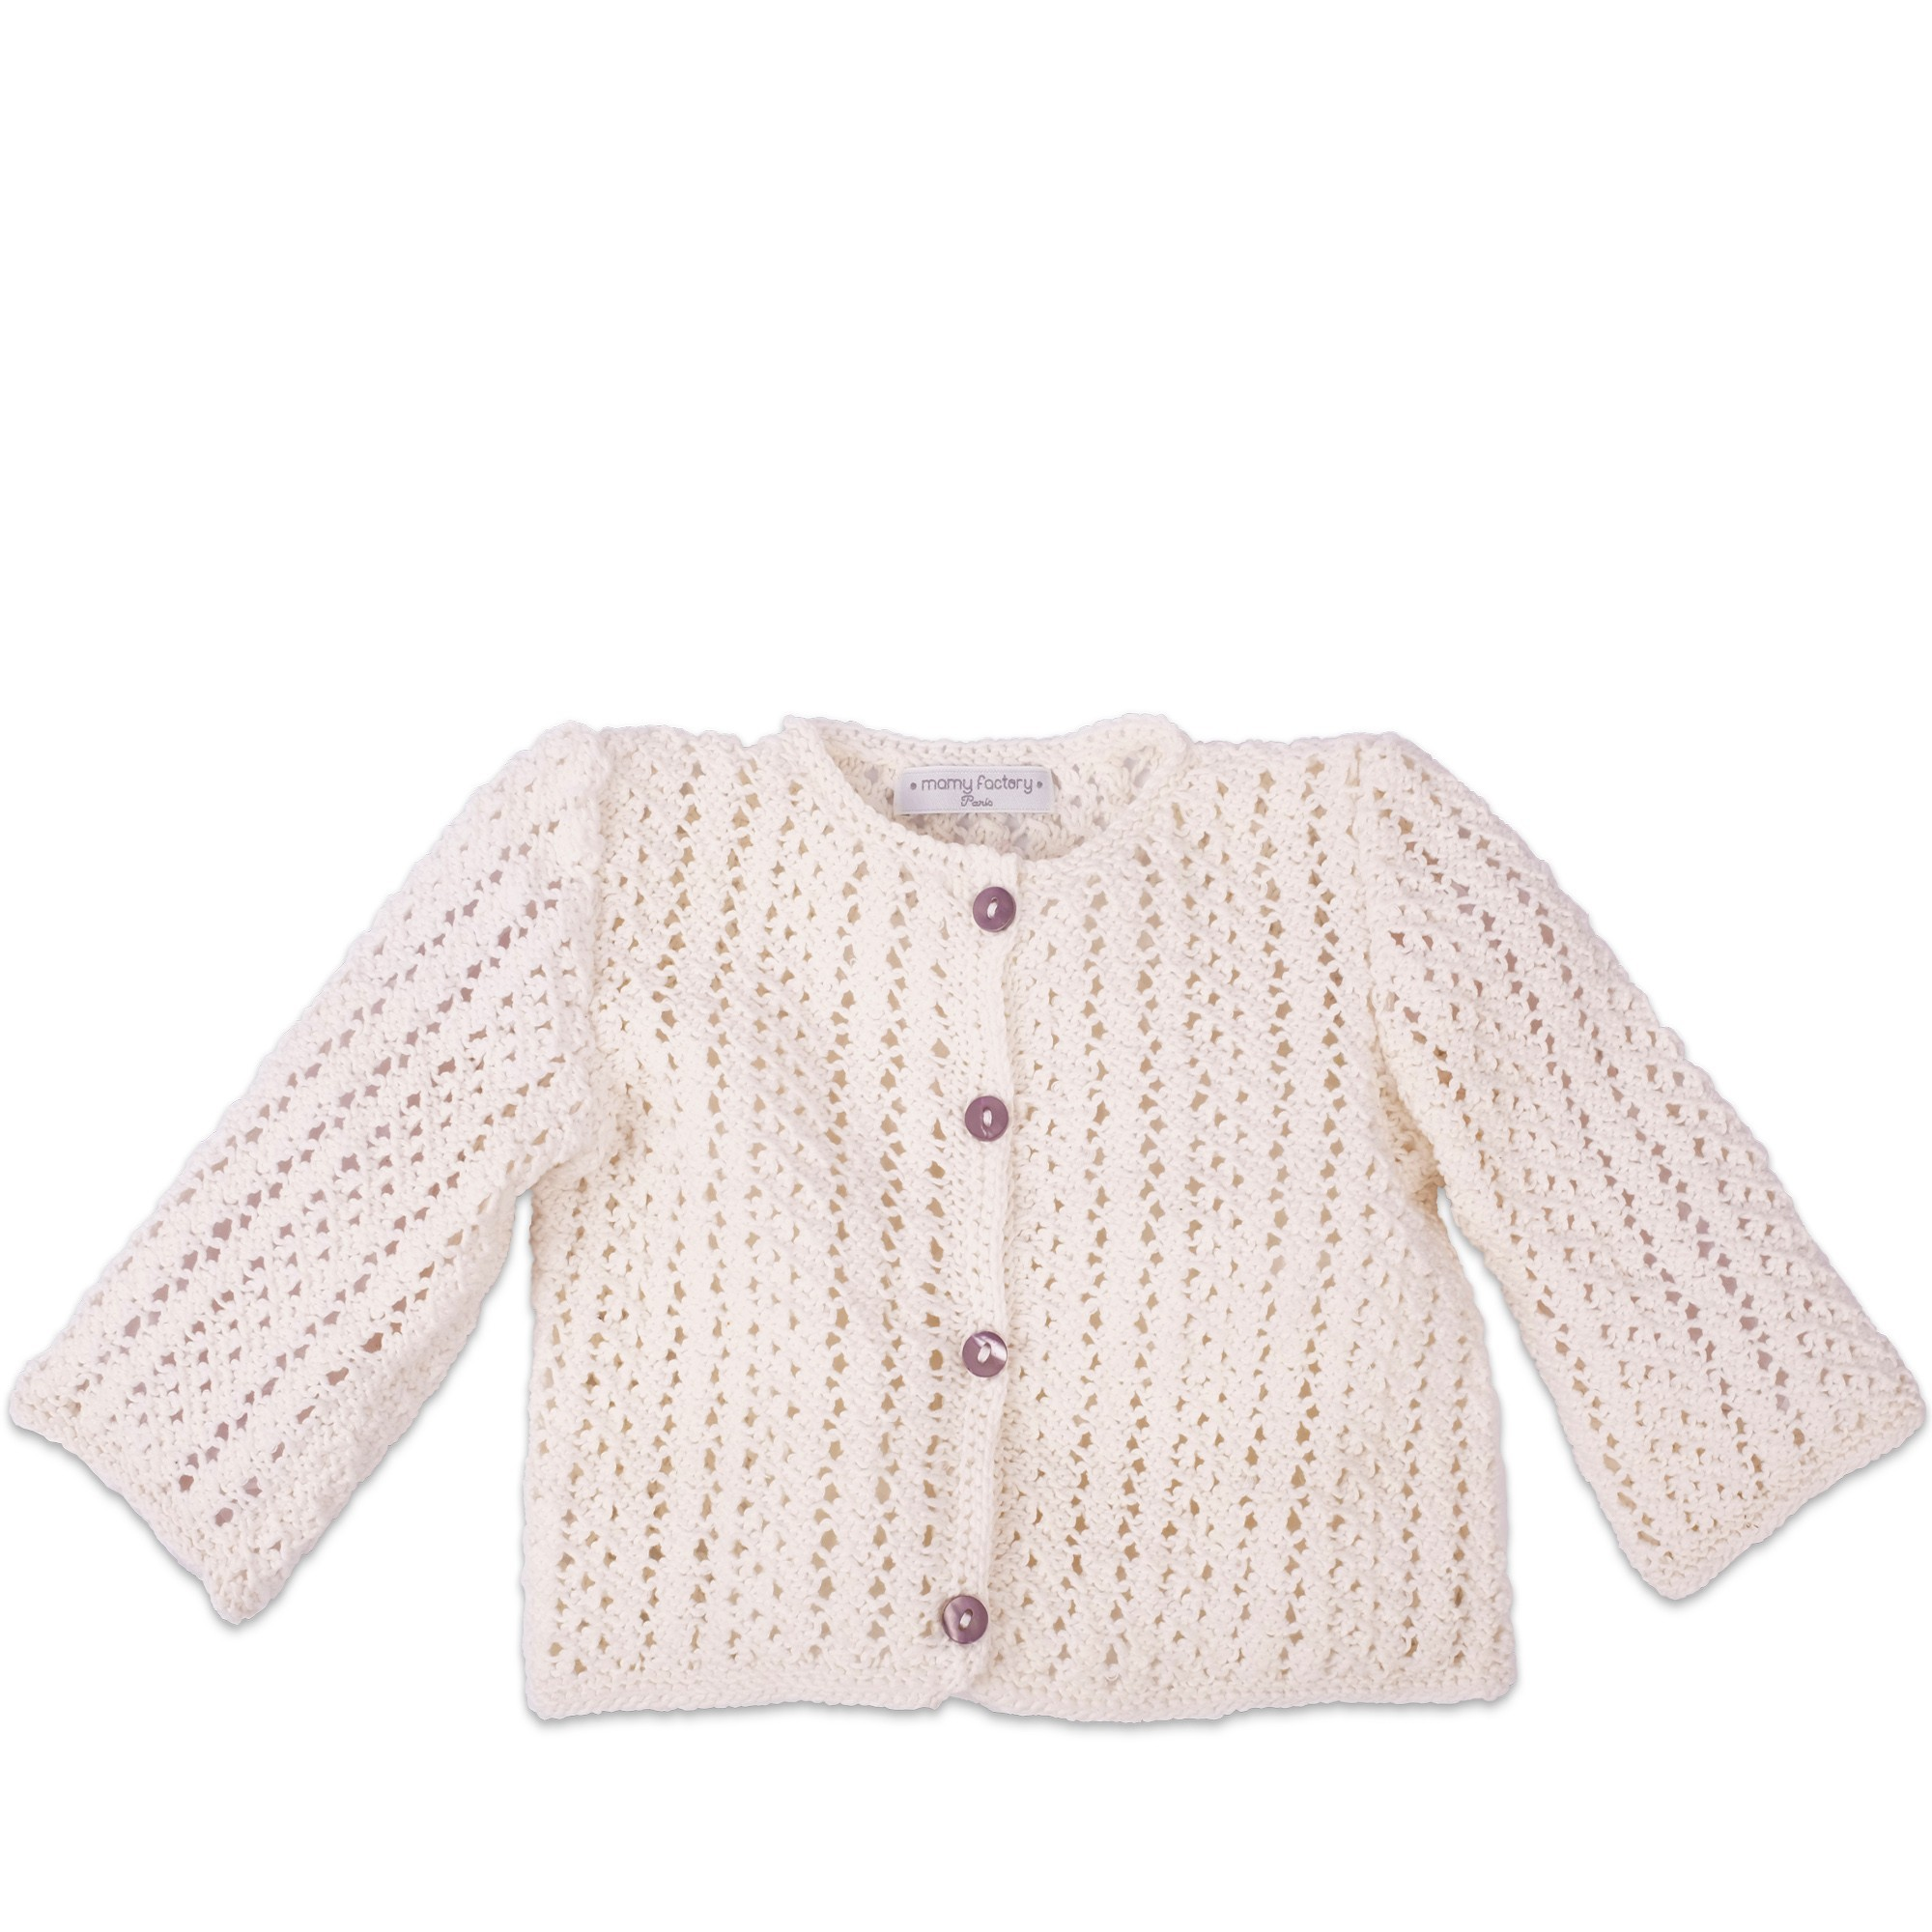 f765f1ea29 Mamy Factory cardigan- Ivory cardigan for babies made from cotton